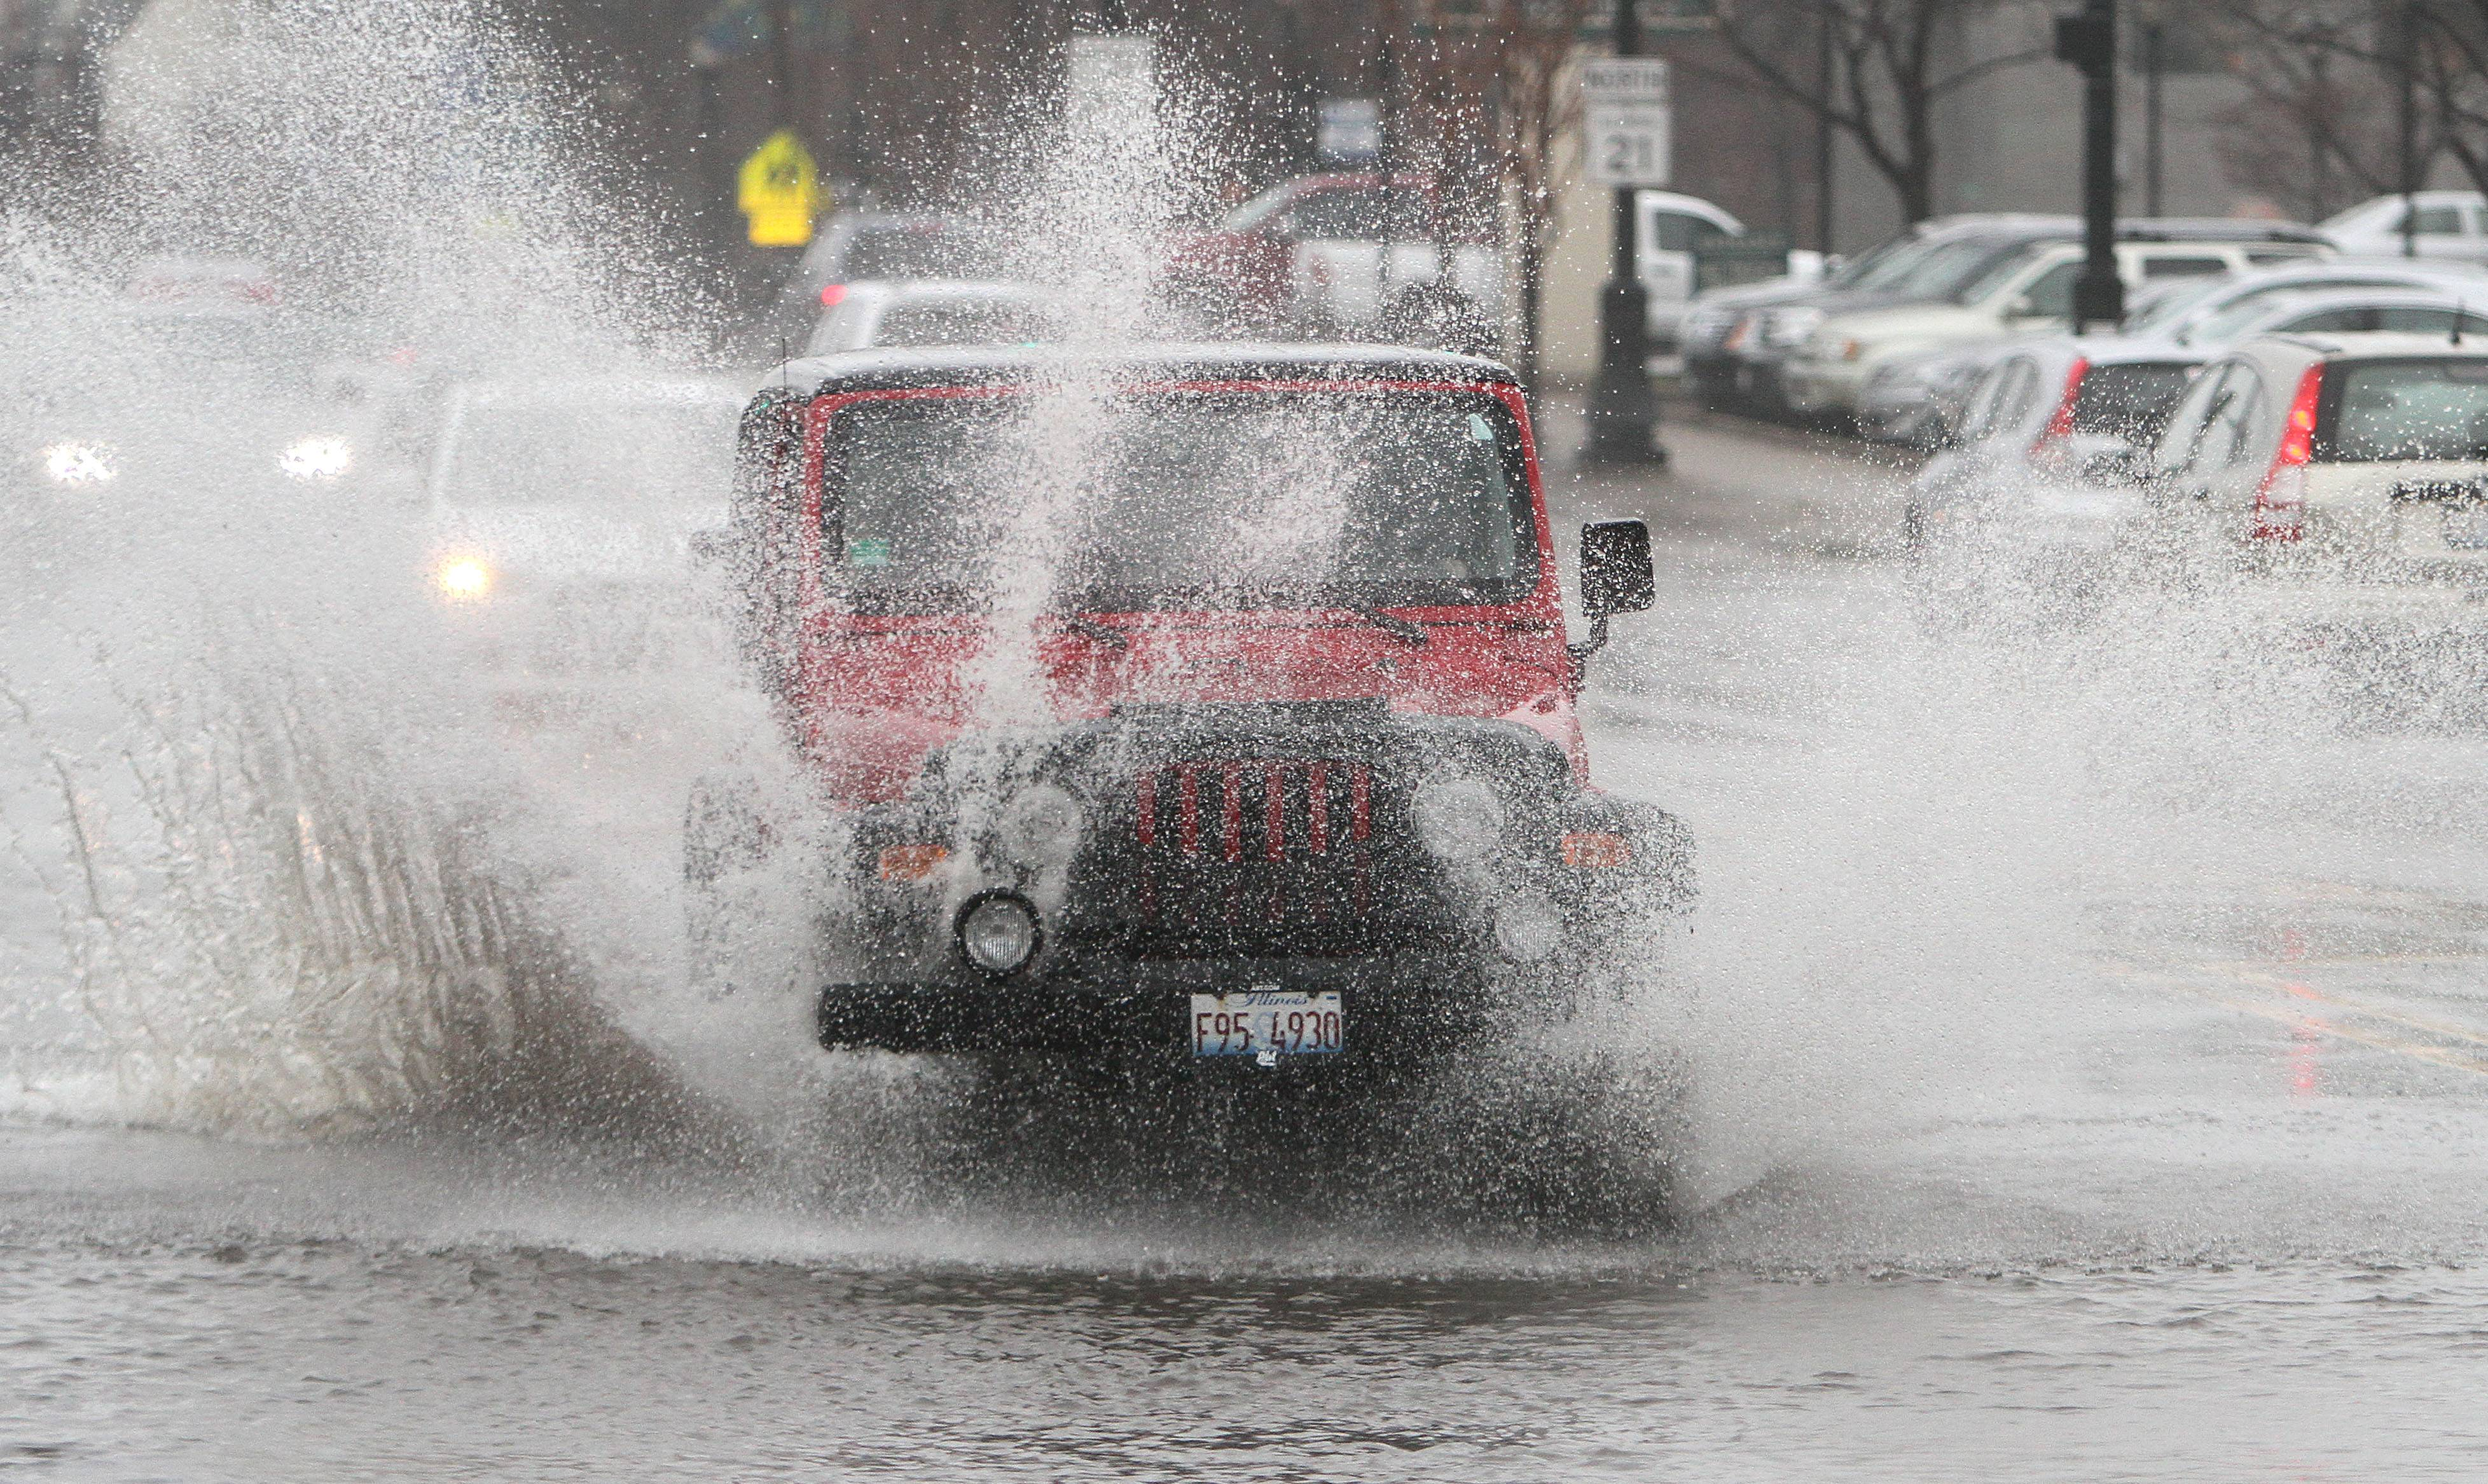 A driver bravely barrels through standing water on Milwaukee Ave. in Libertyville as heavy rains fell on the area Thursday morning.